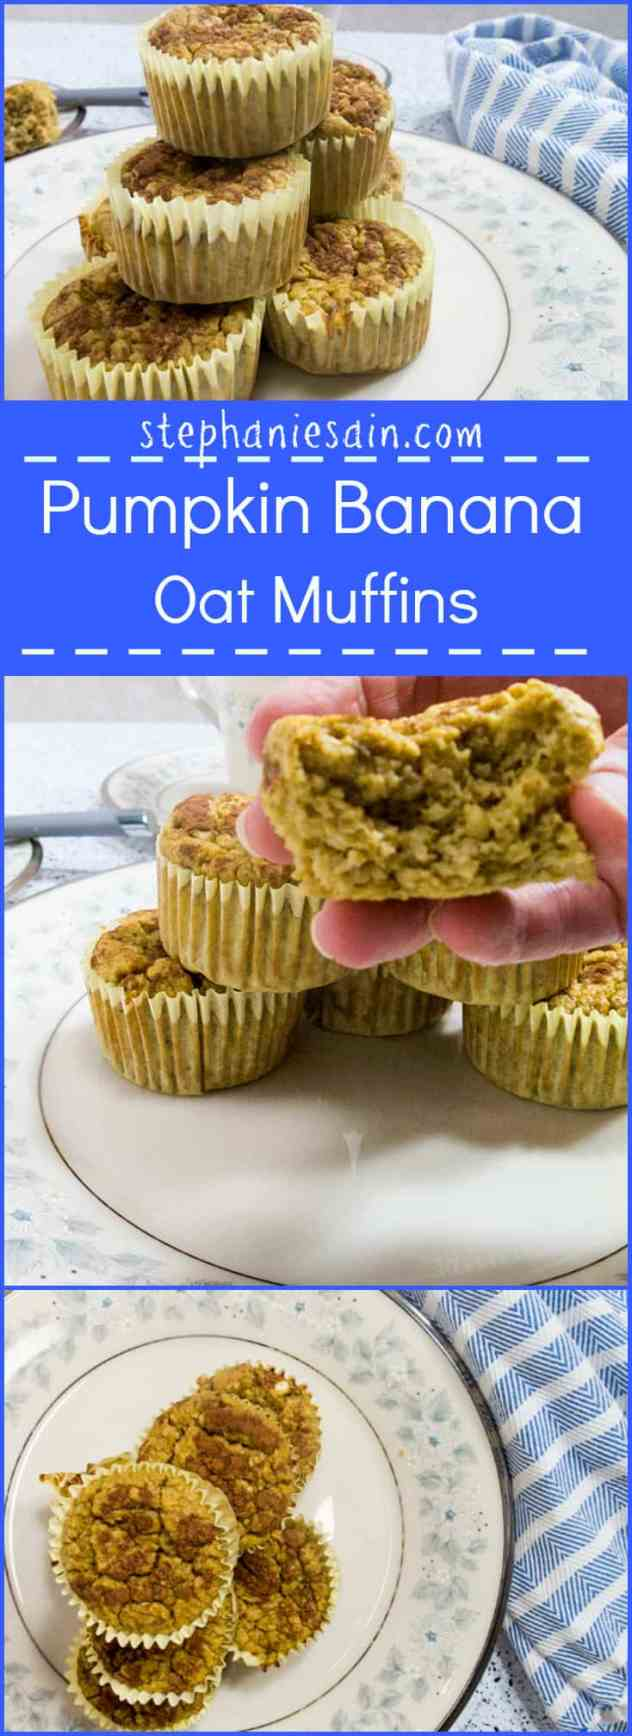 Pumpkin Banana Oat Muffins are the perfect, tasty, healthy muffins for breakfast or snack. No refined sugars, Vegetarian and Gluten Free.